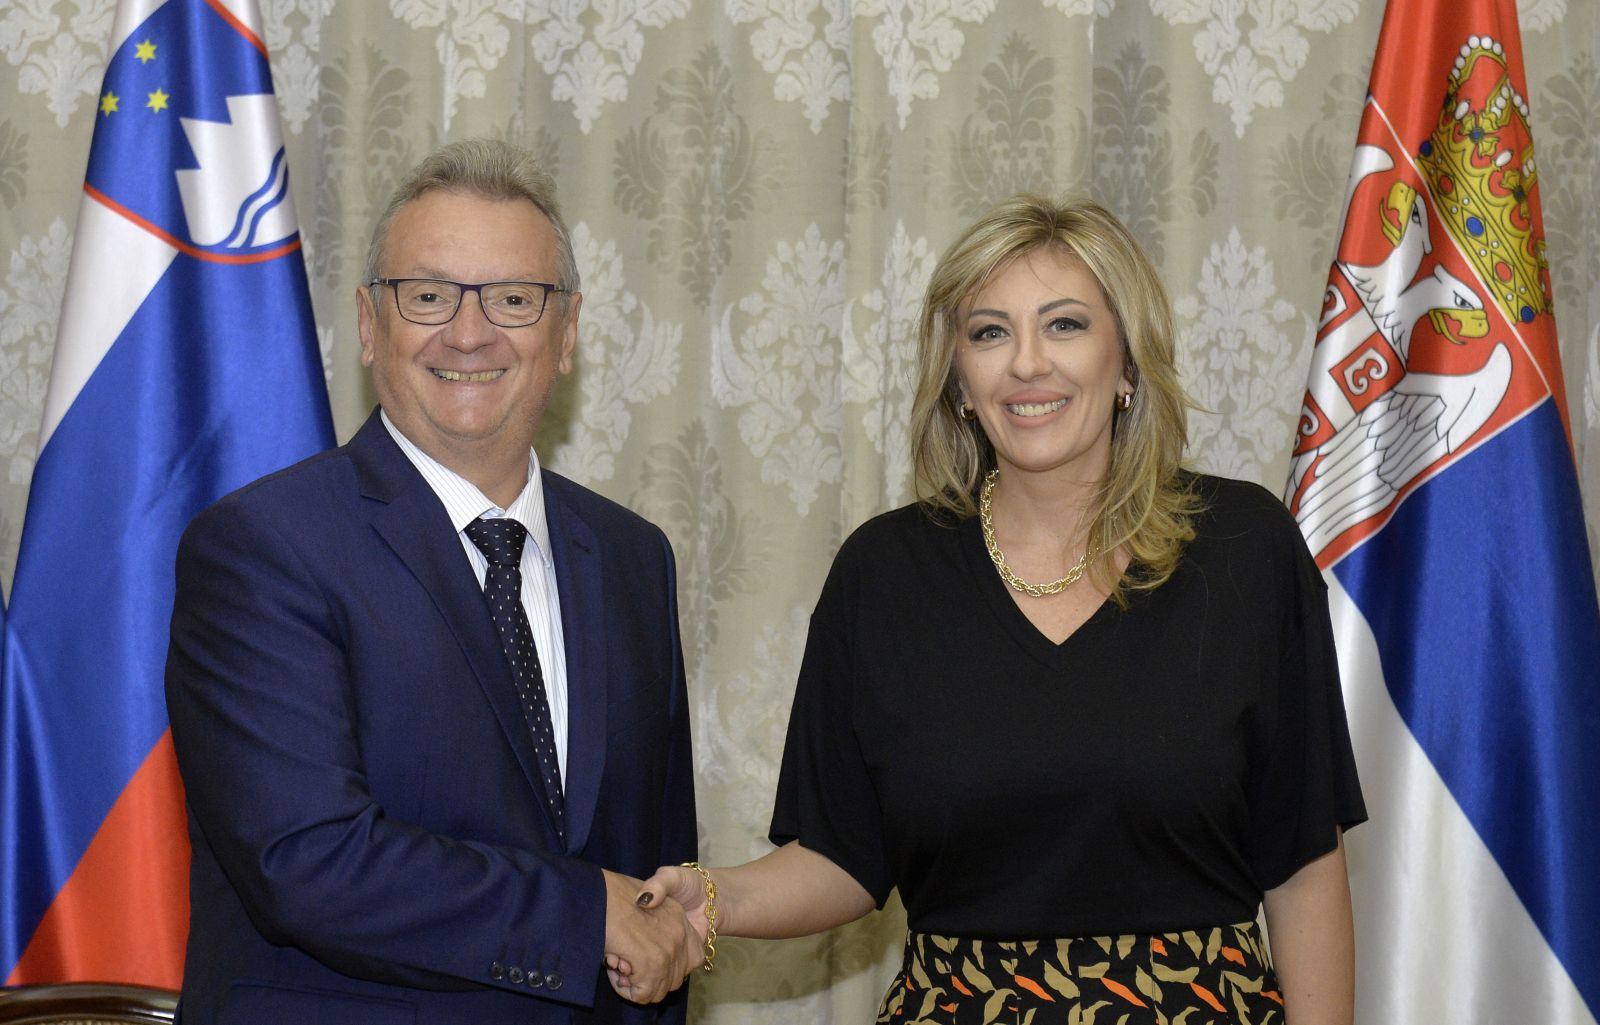 J. Joksimović and Jarc: Slovenia's concrete support for Serbia's European integration